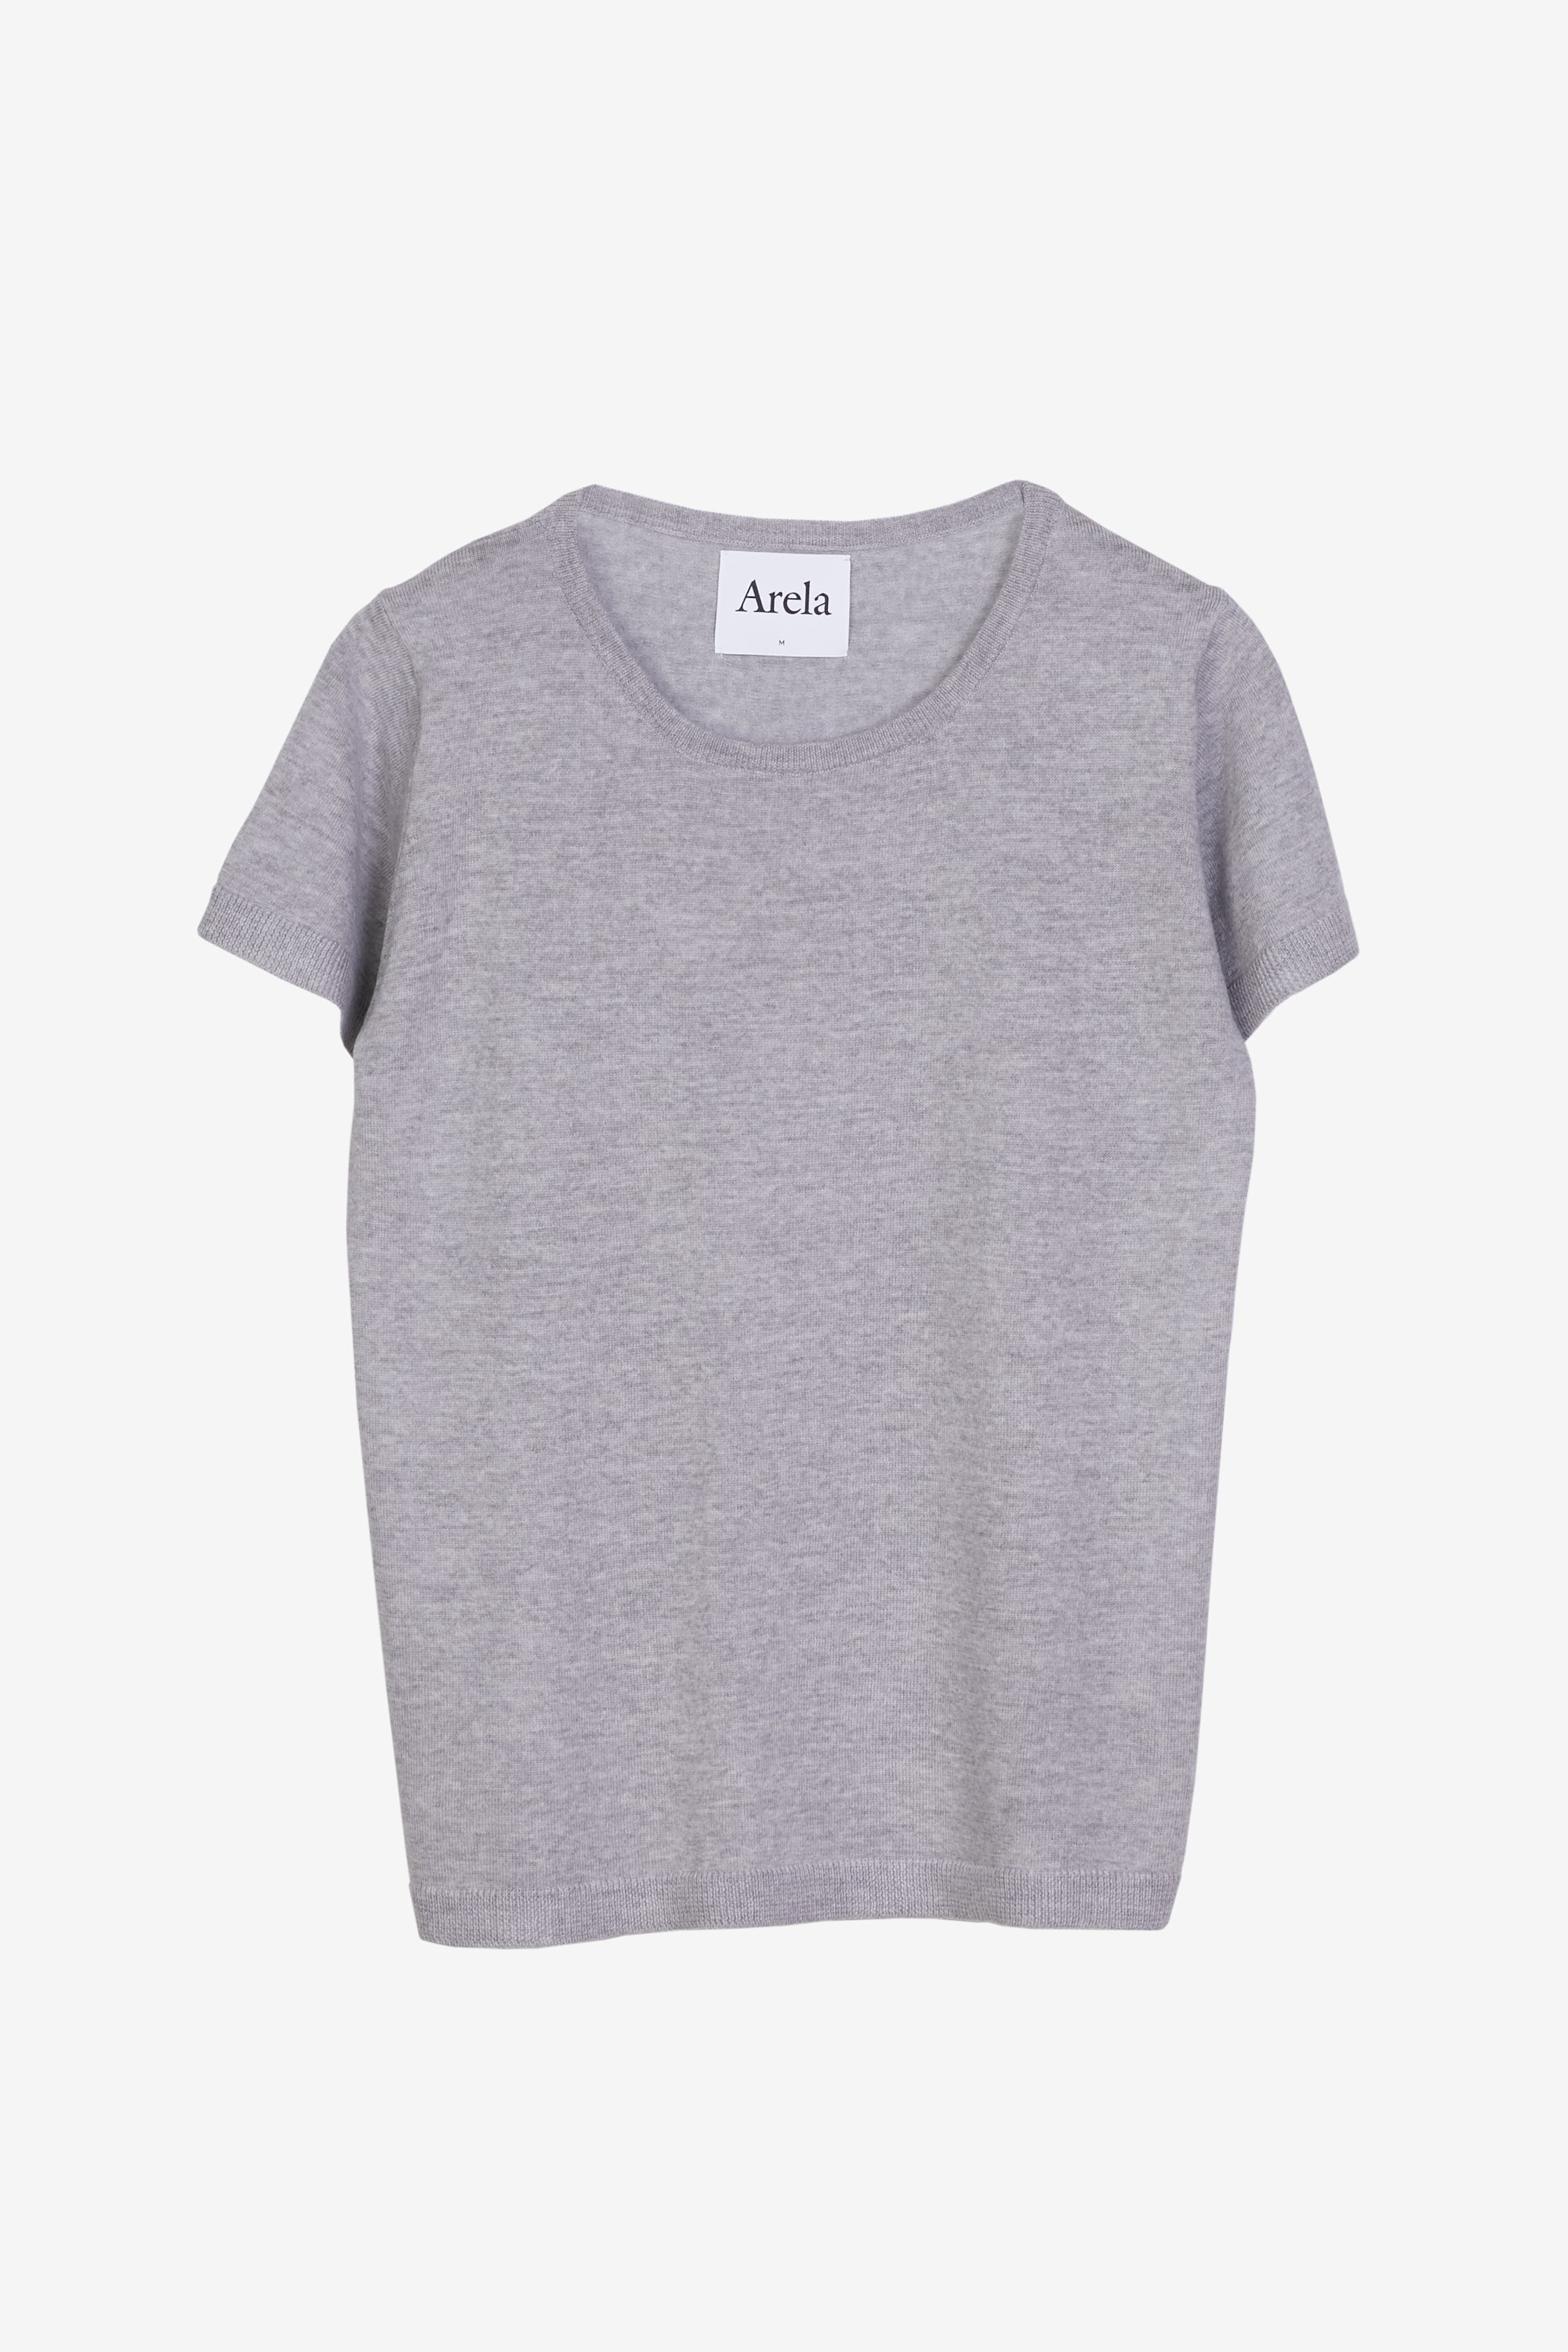 Knitted Kim t-shirt in light grey